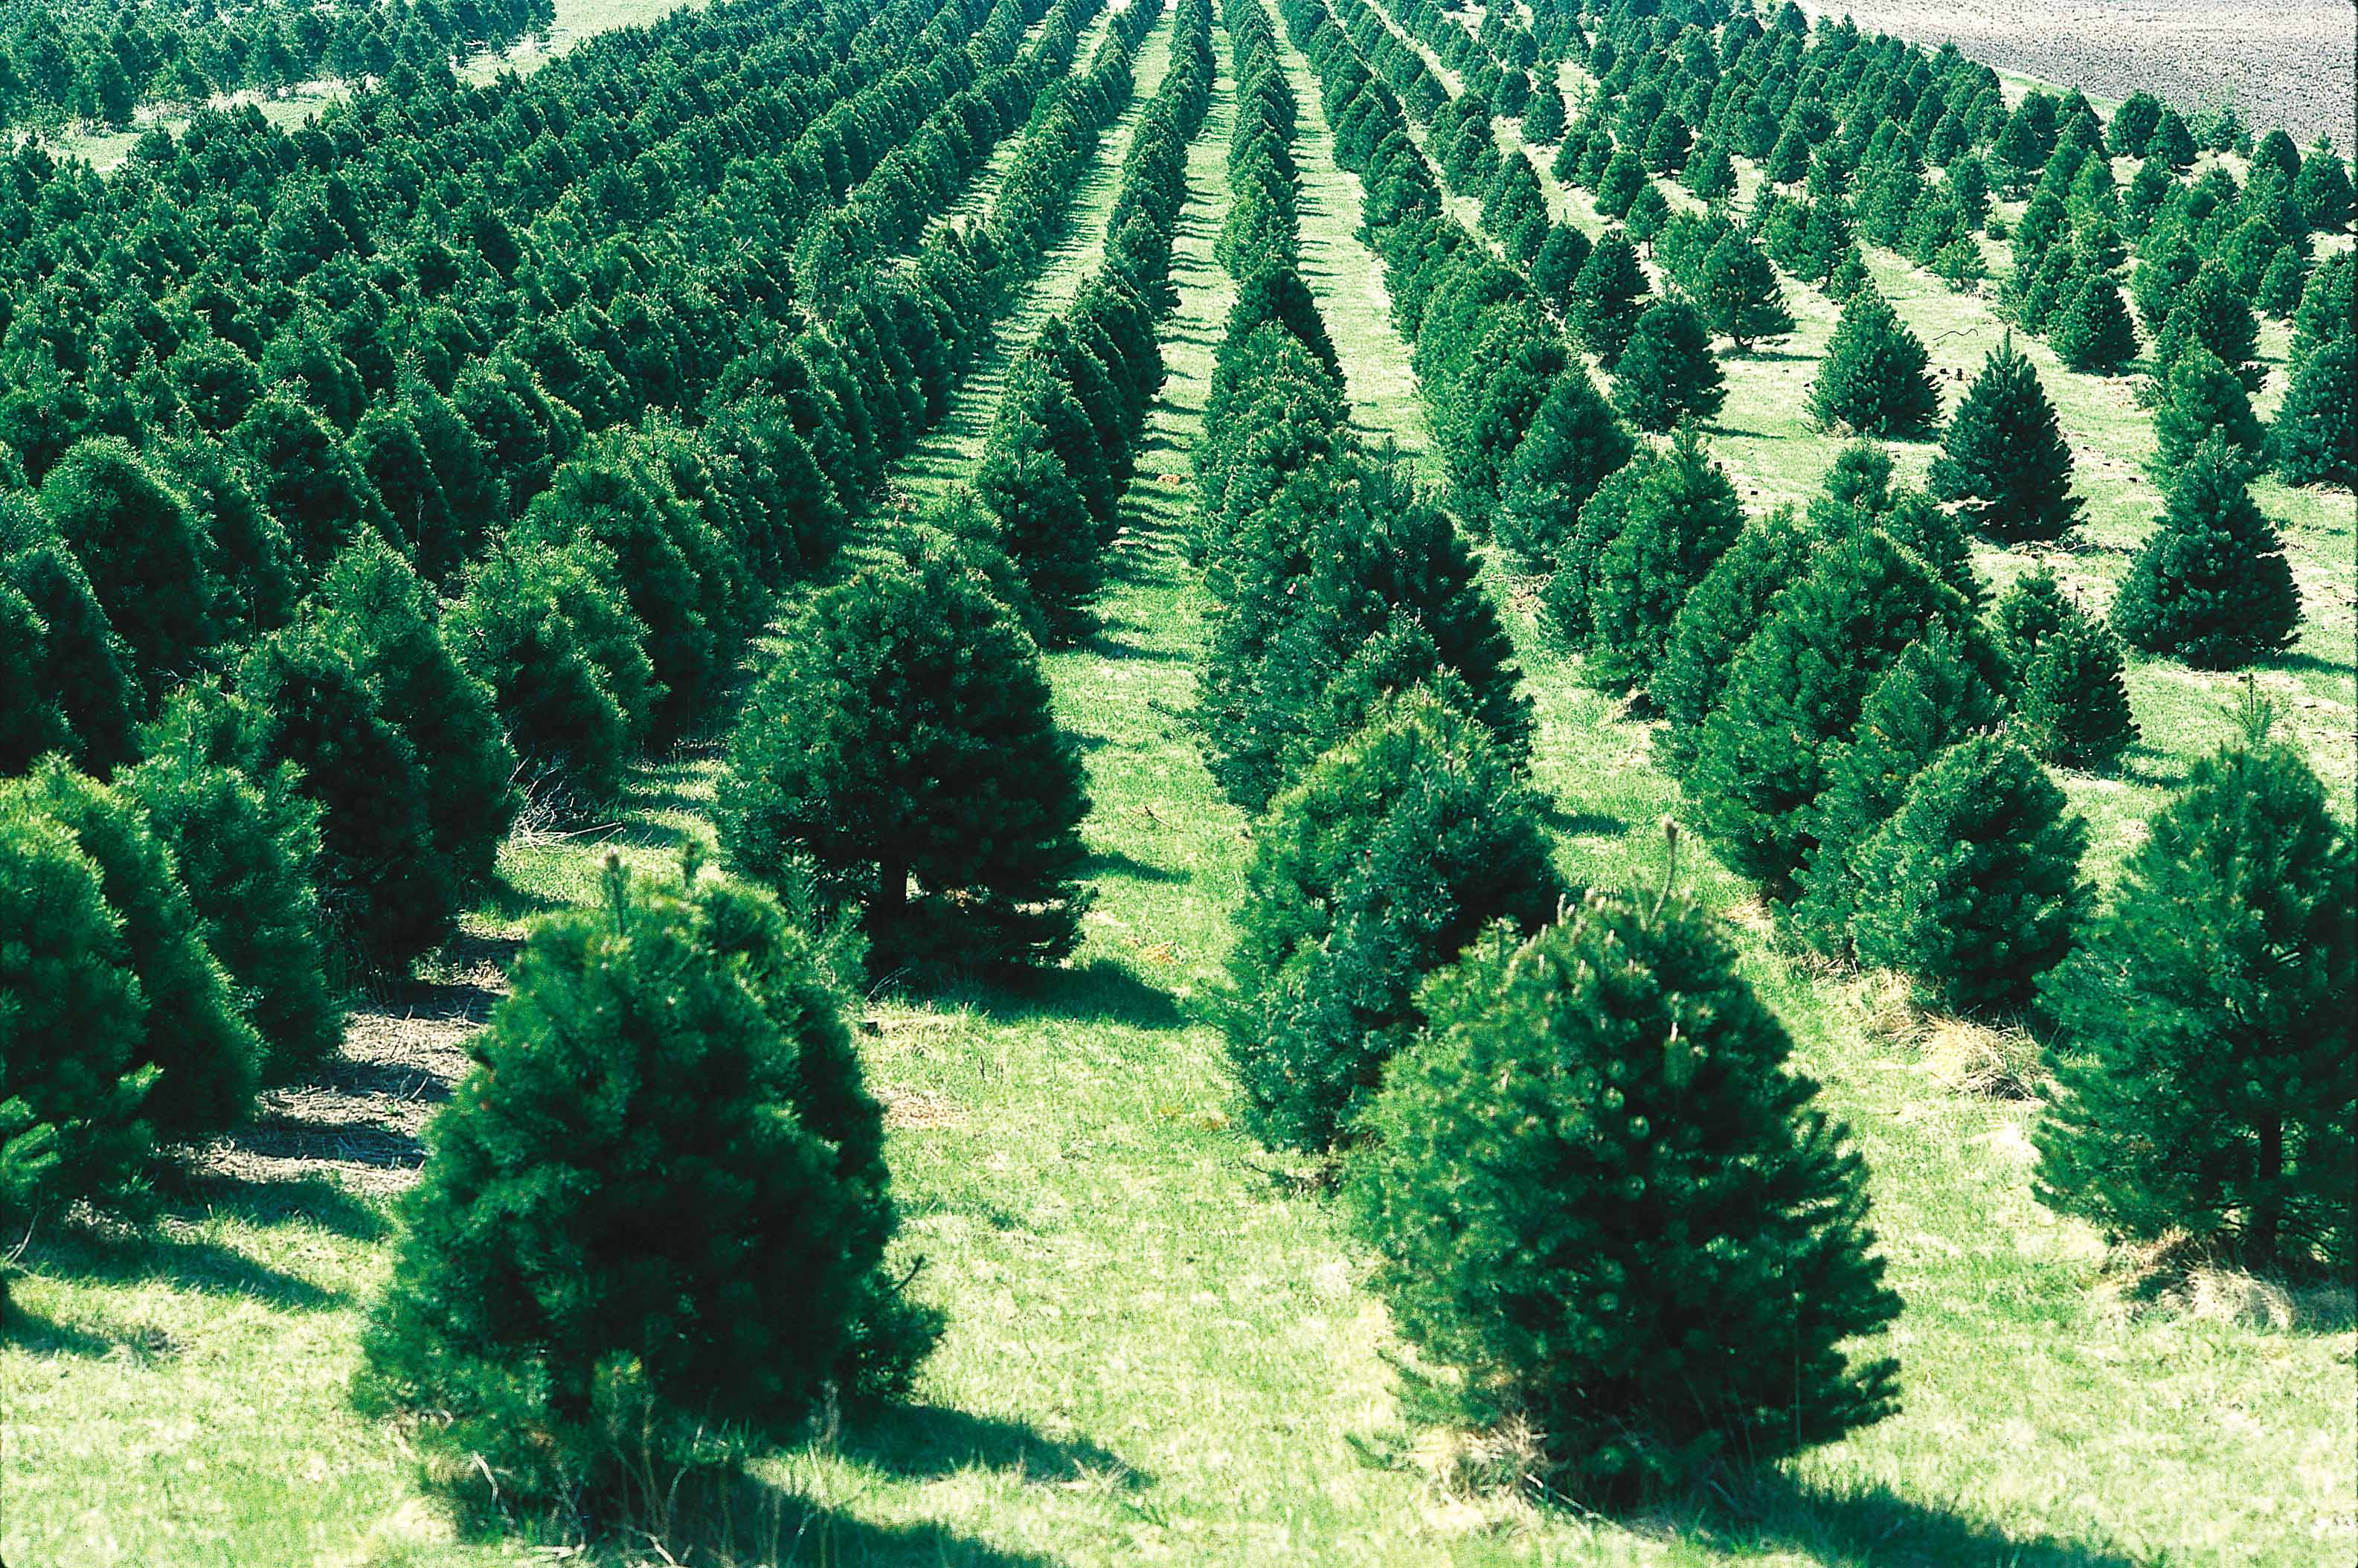 this christmas tree farm in iowa is located on flat ground and has well mowed rows between the trees - Christmas Trees Near Me